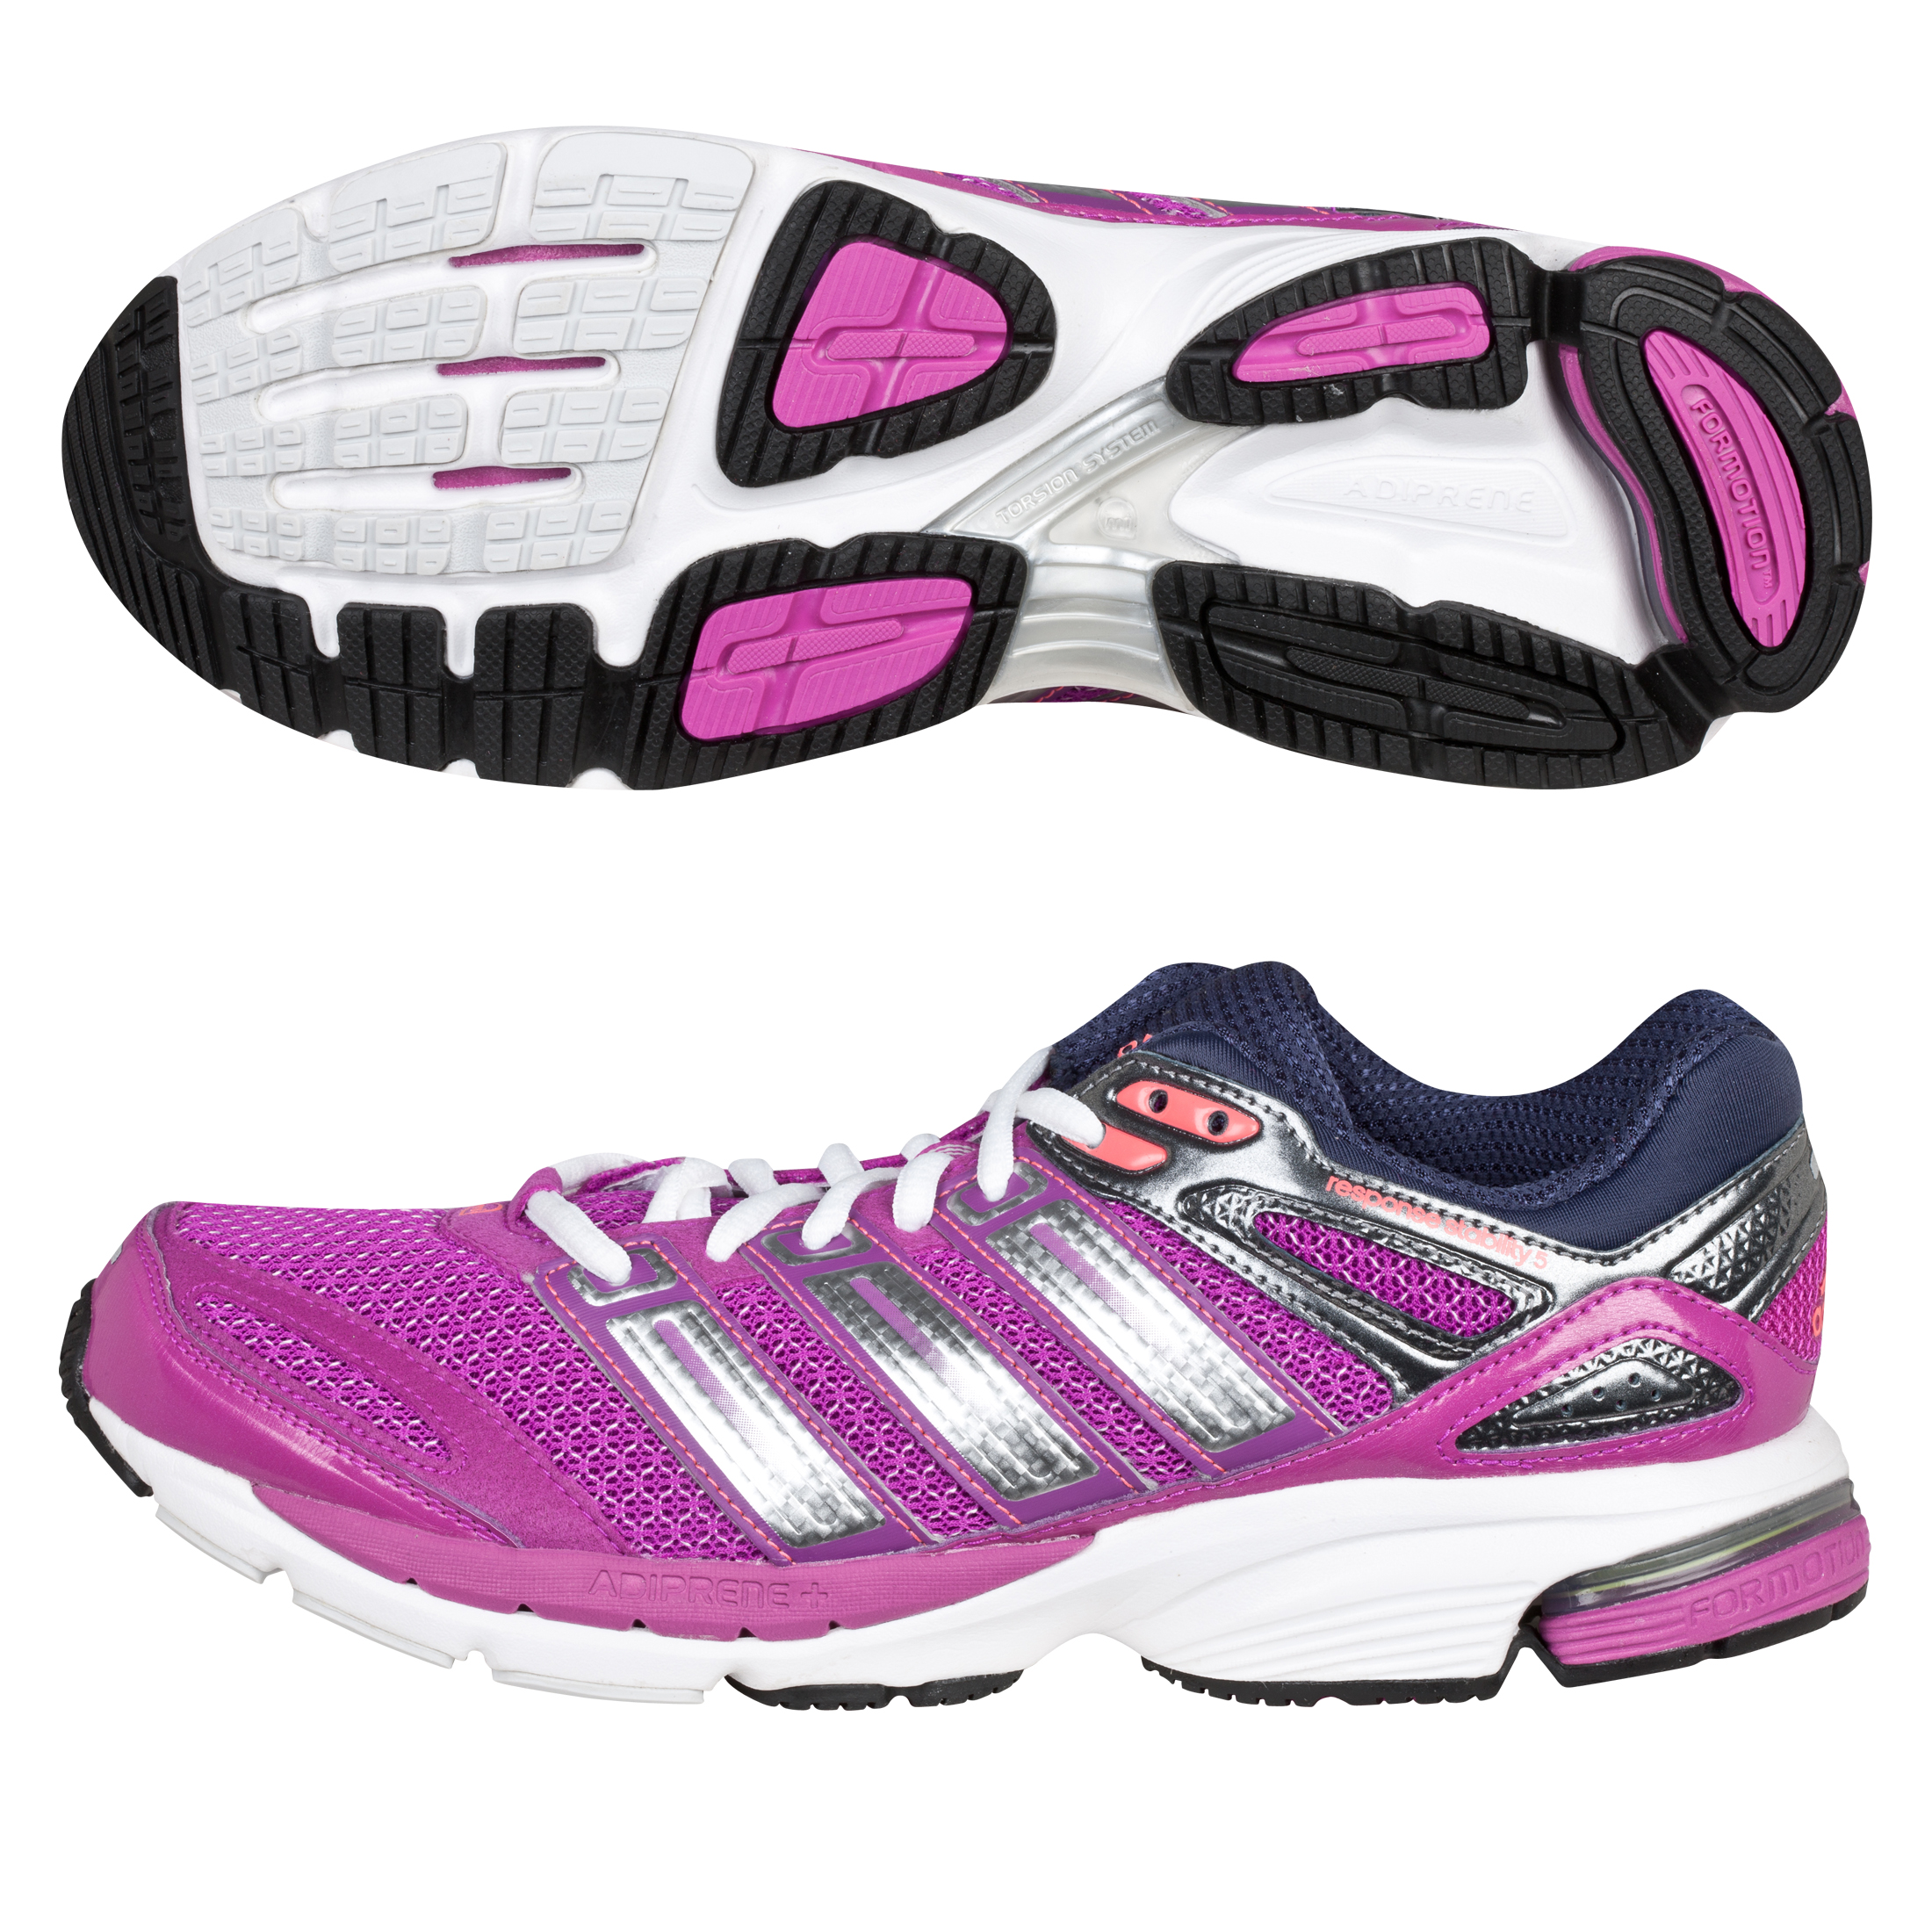 Adidas Response Stability 5 Trainer - Womens